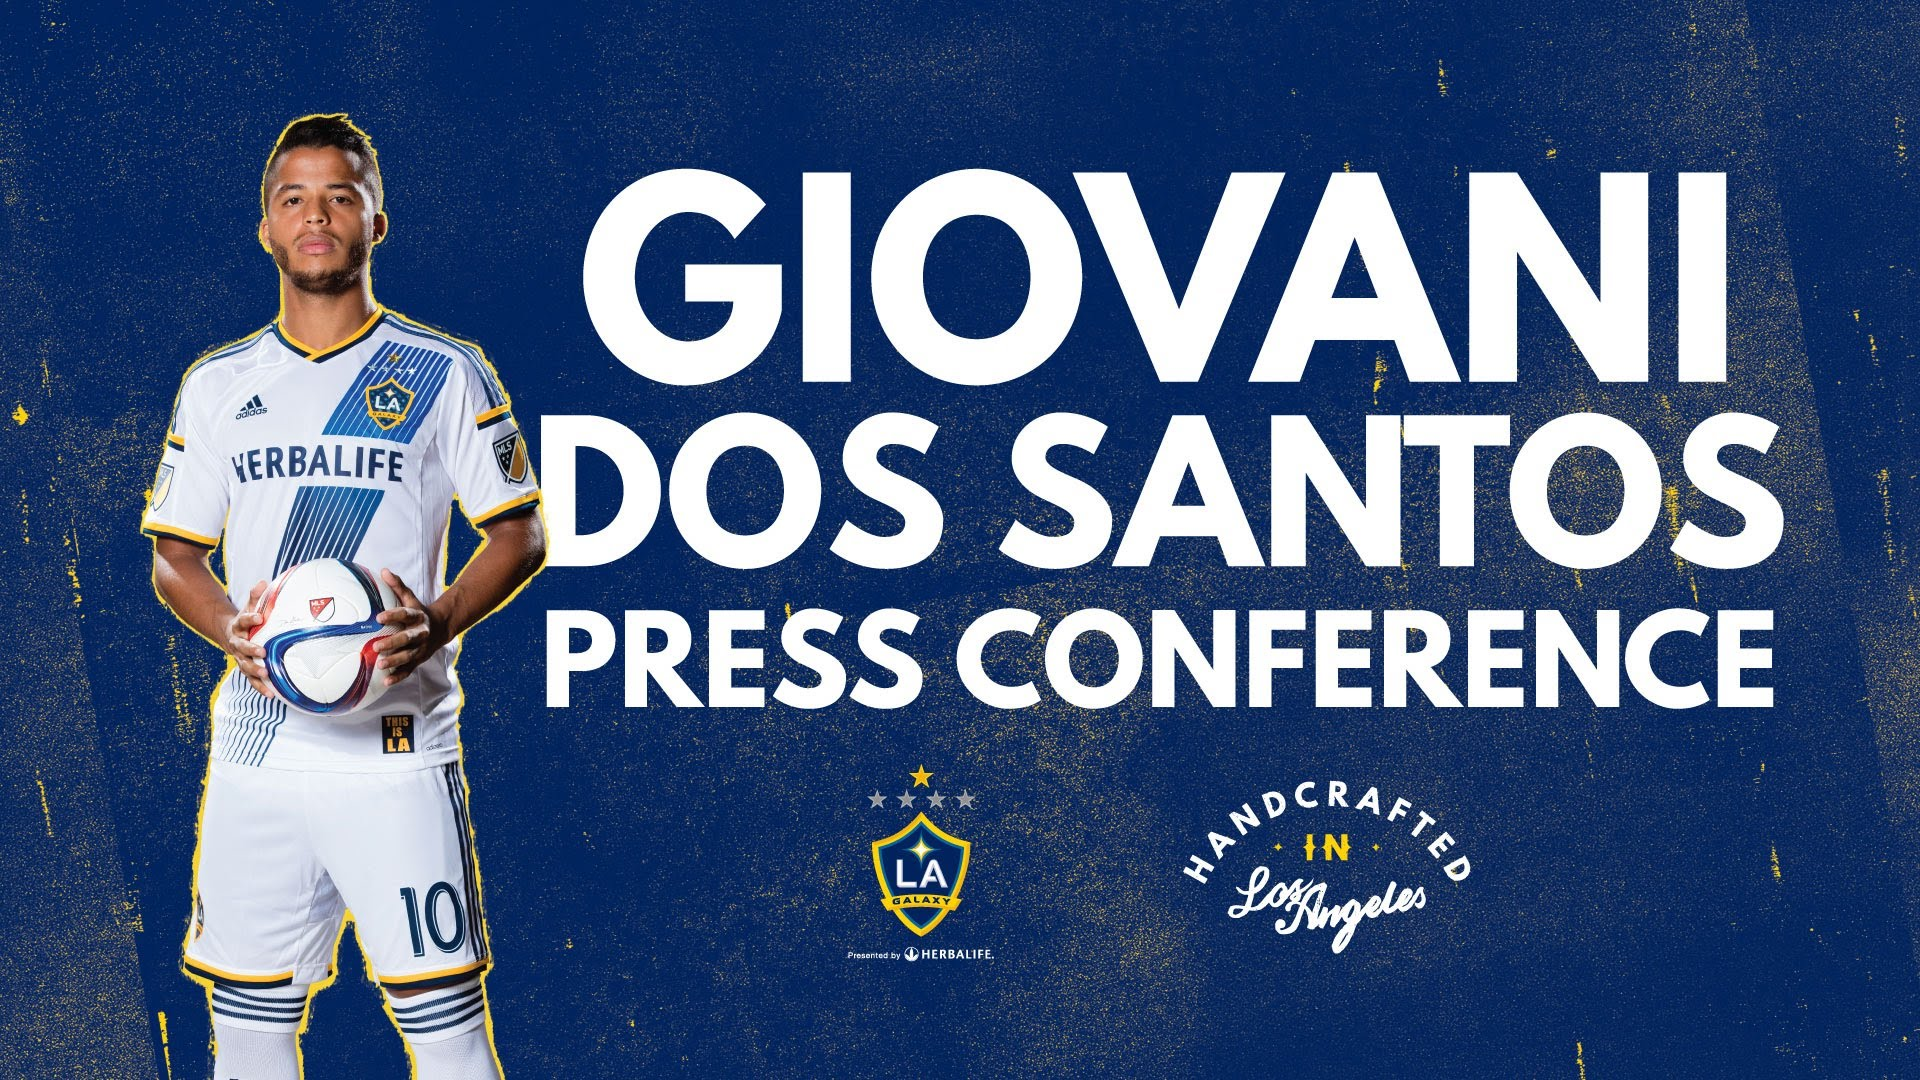 LA Galaxy's Giovani dos Santos Press Conference